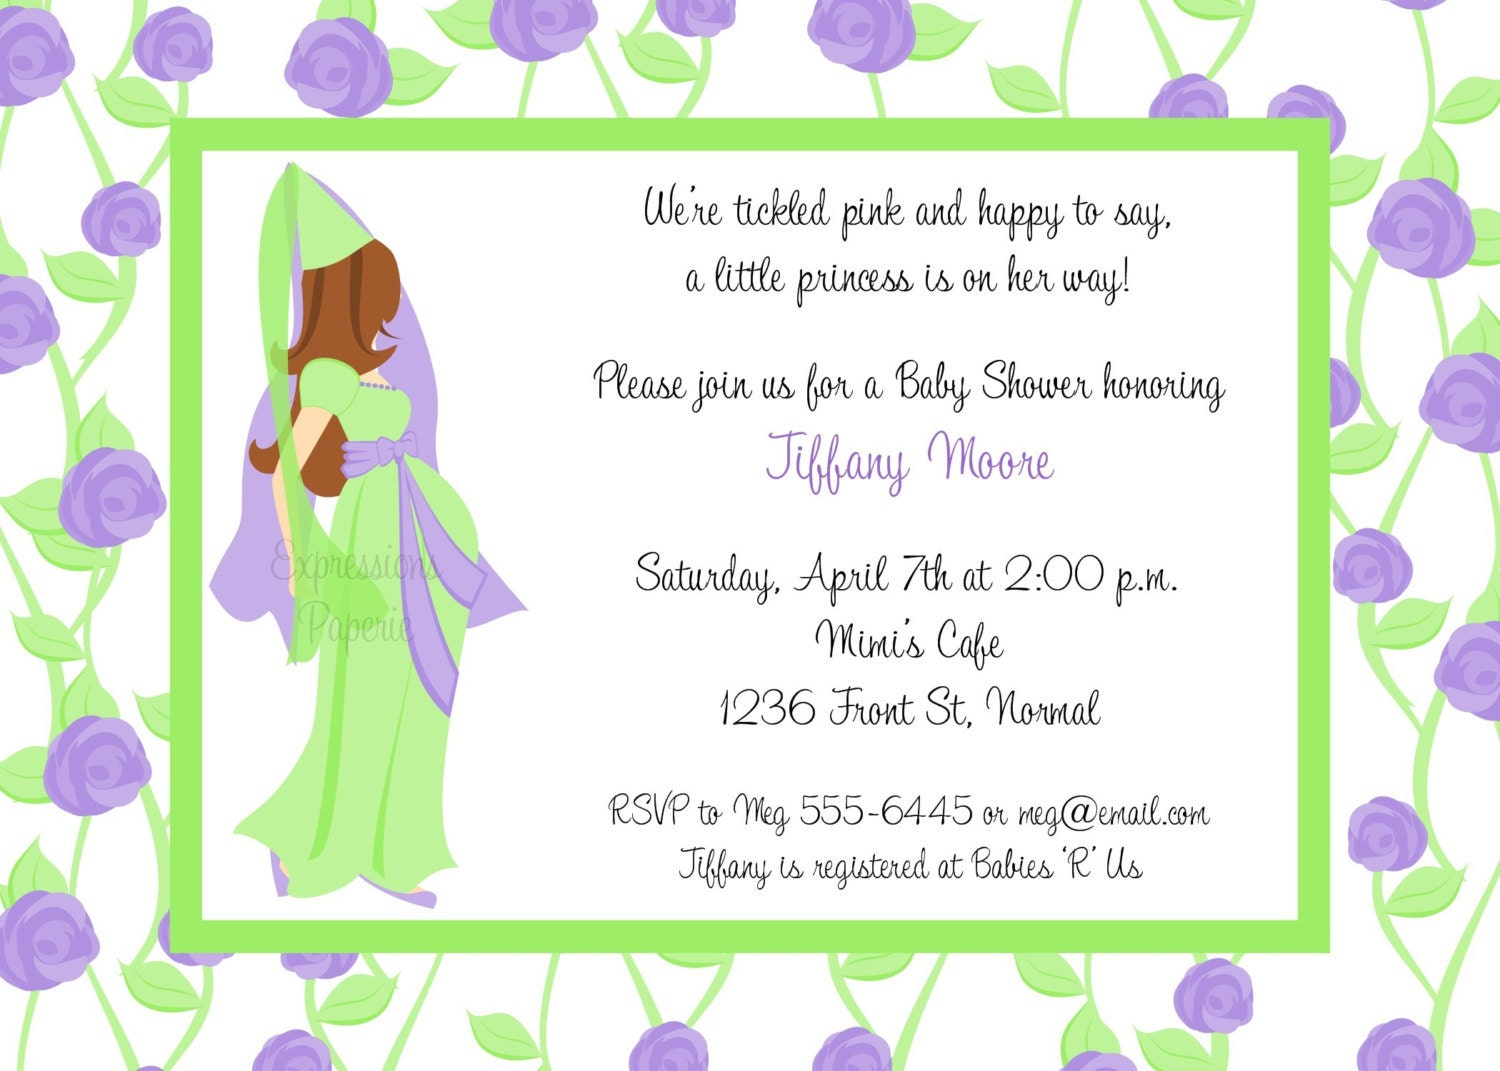 Email Invitations For Baby Shower images